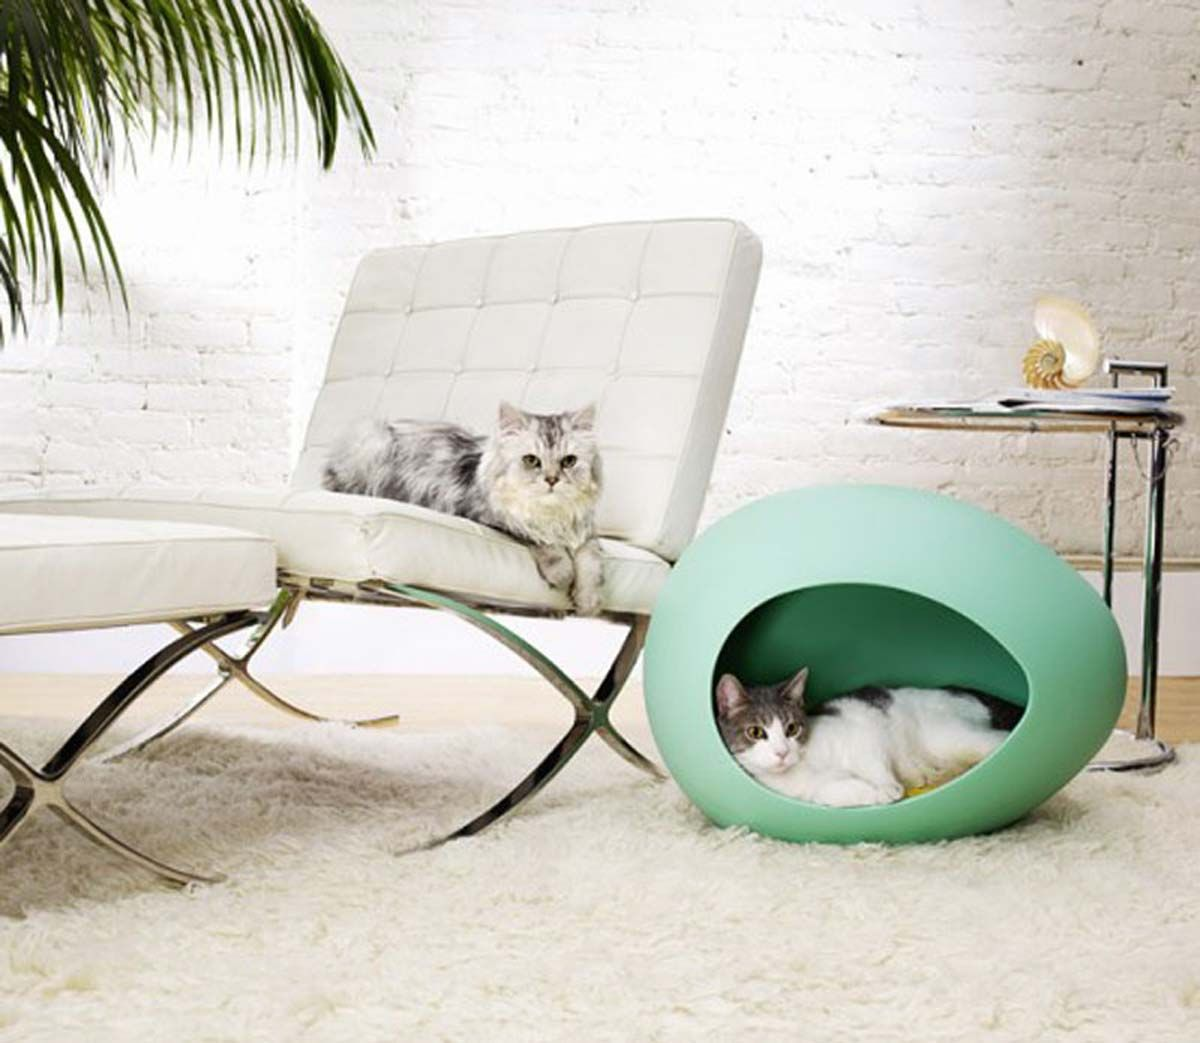 Modern Pet Furniture   Egg Shaped Pet Bed, Private, Trendy And Most  Important, Easy For Cleaning